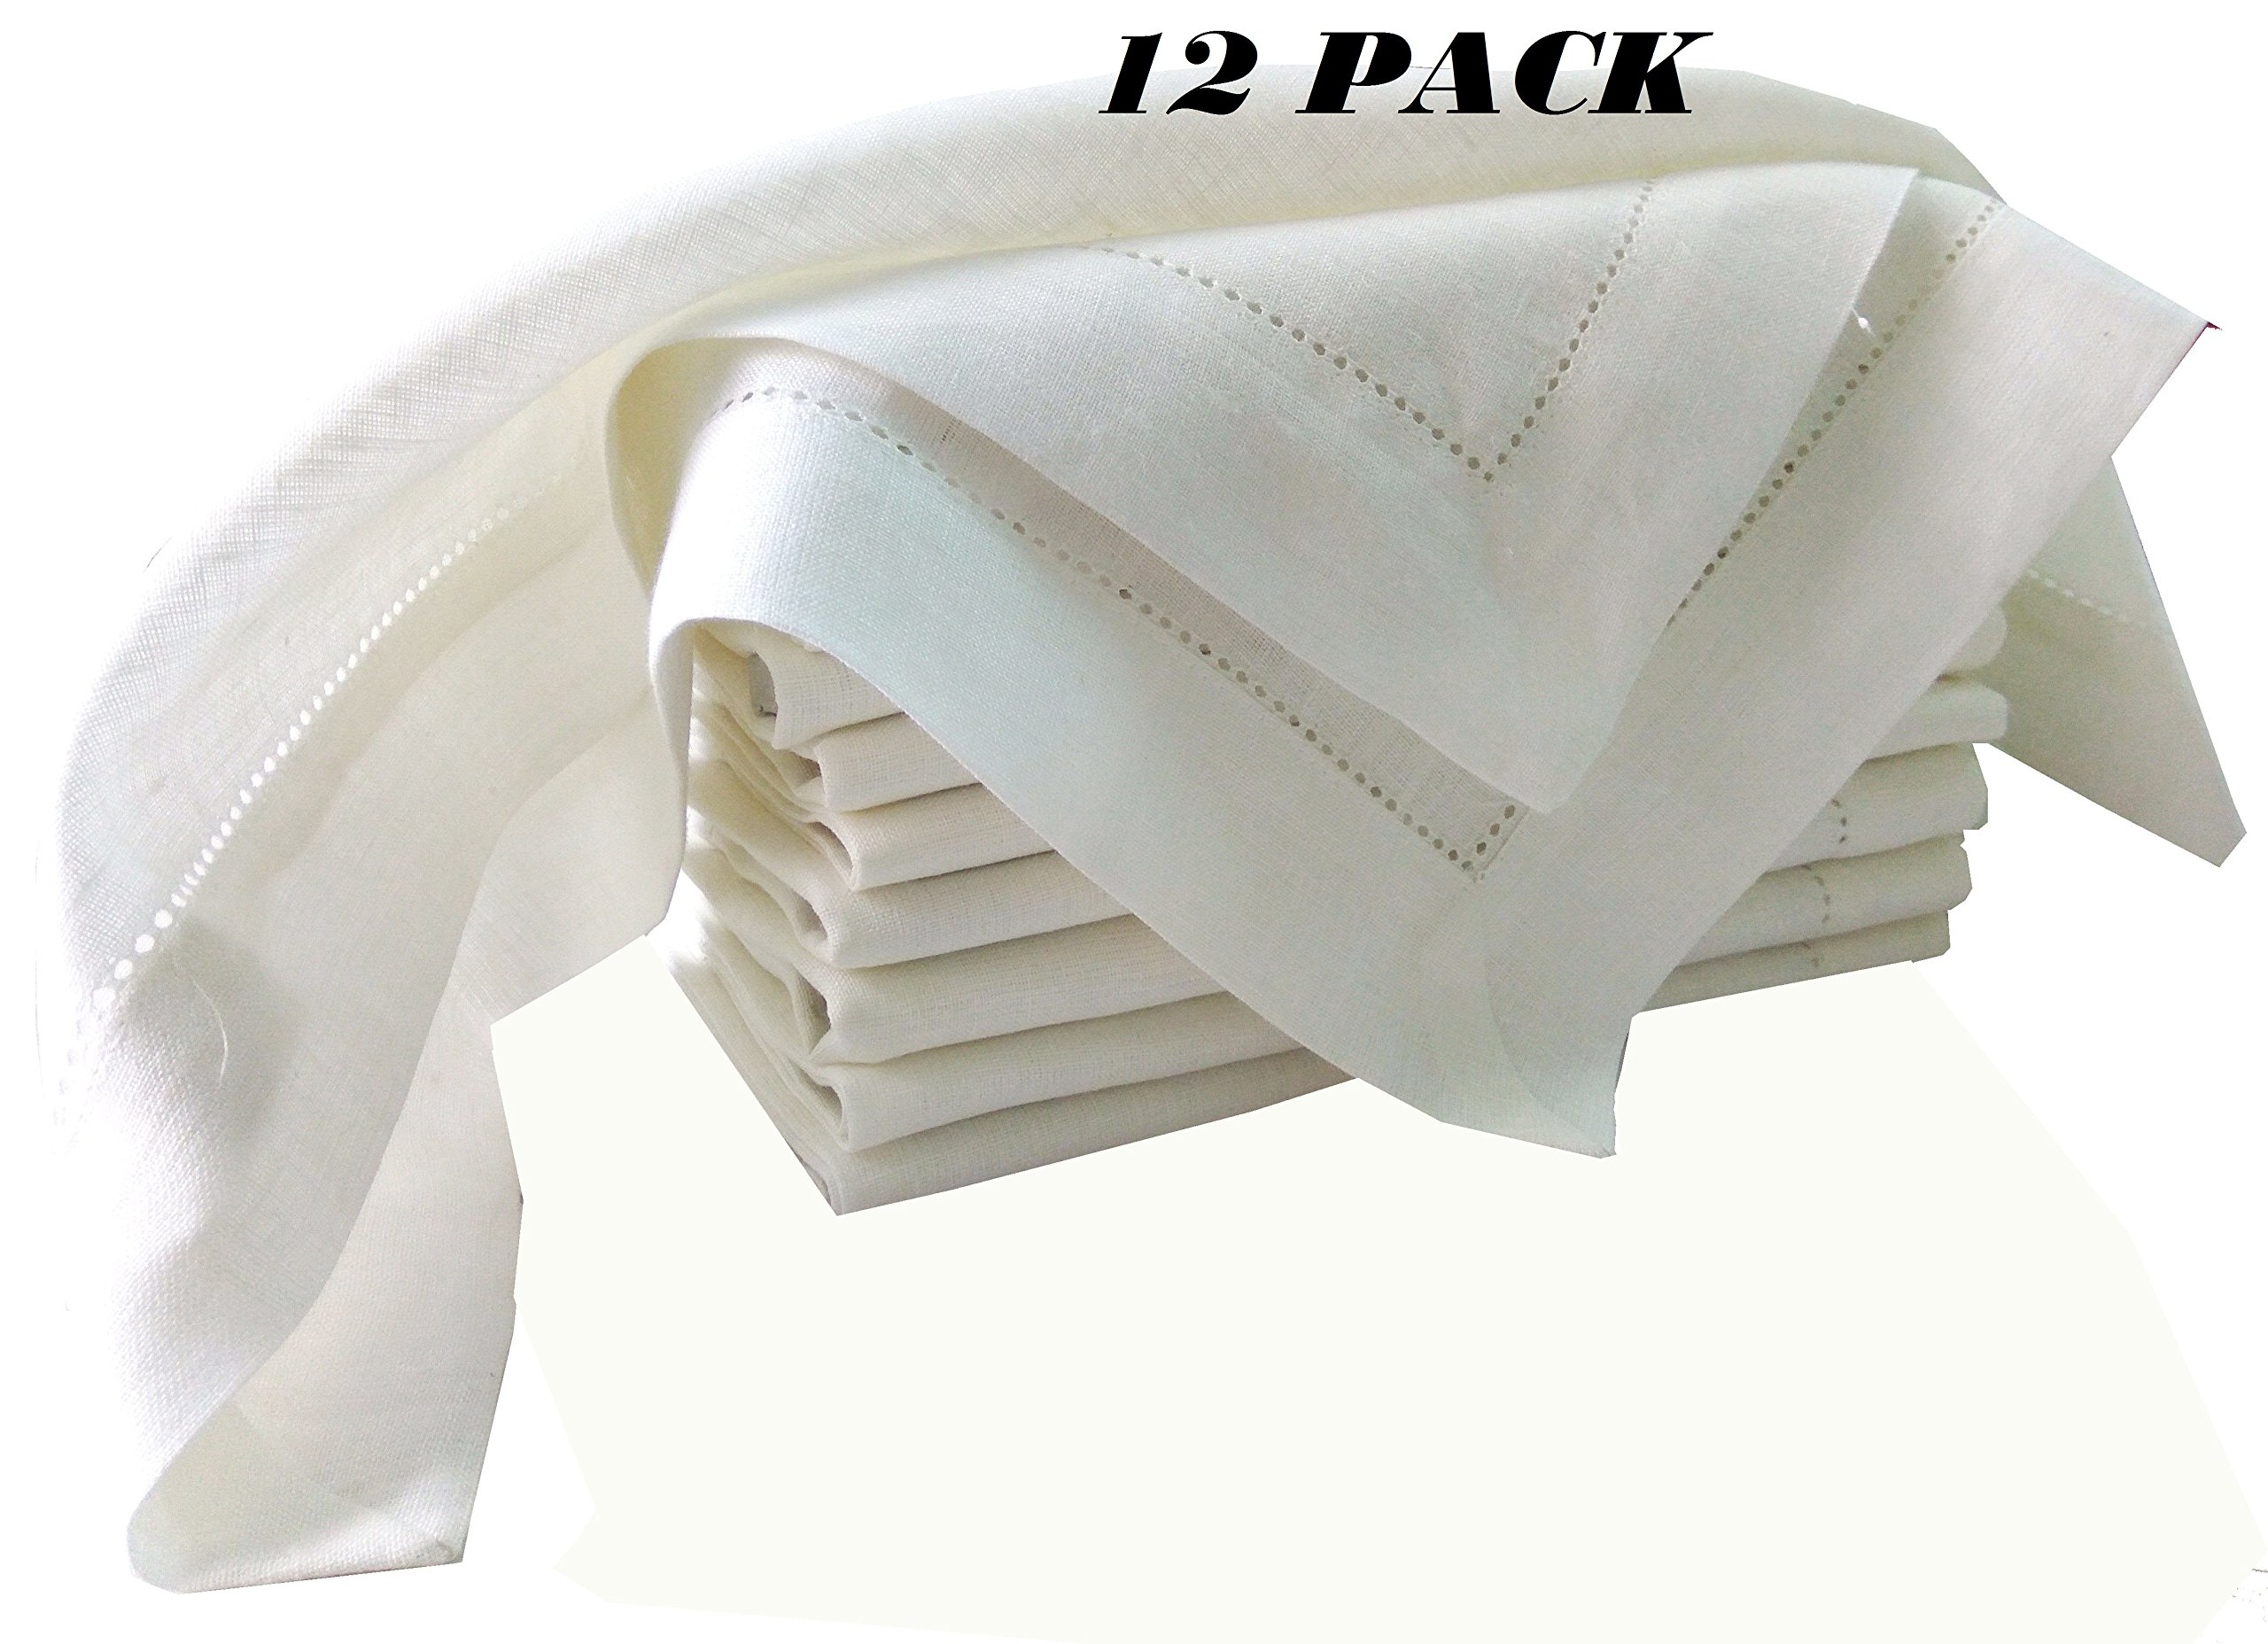 PACK of 12, 100% Pure white Linen Dinner Napkin 20x20, White color by Linen Clubs - Hemstitched hand made ladder lace look napkins. One of life's little home luxuries